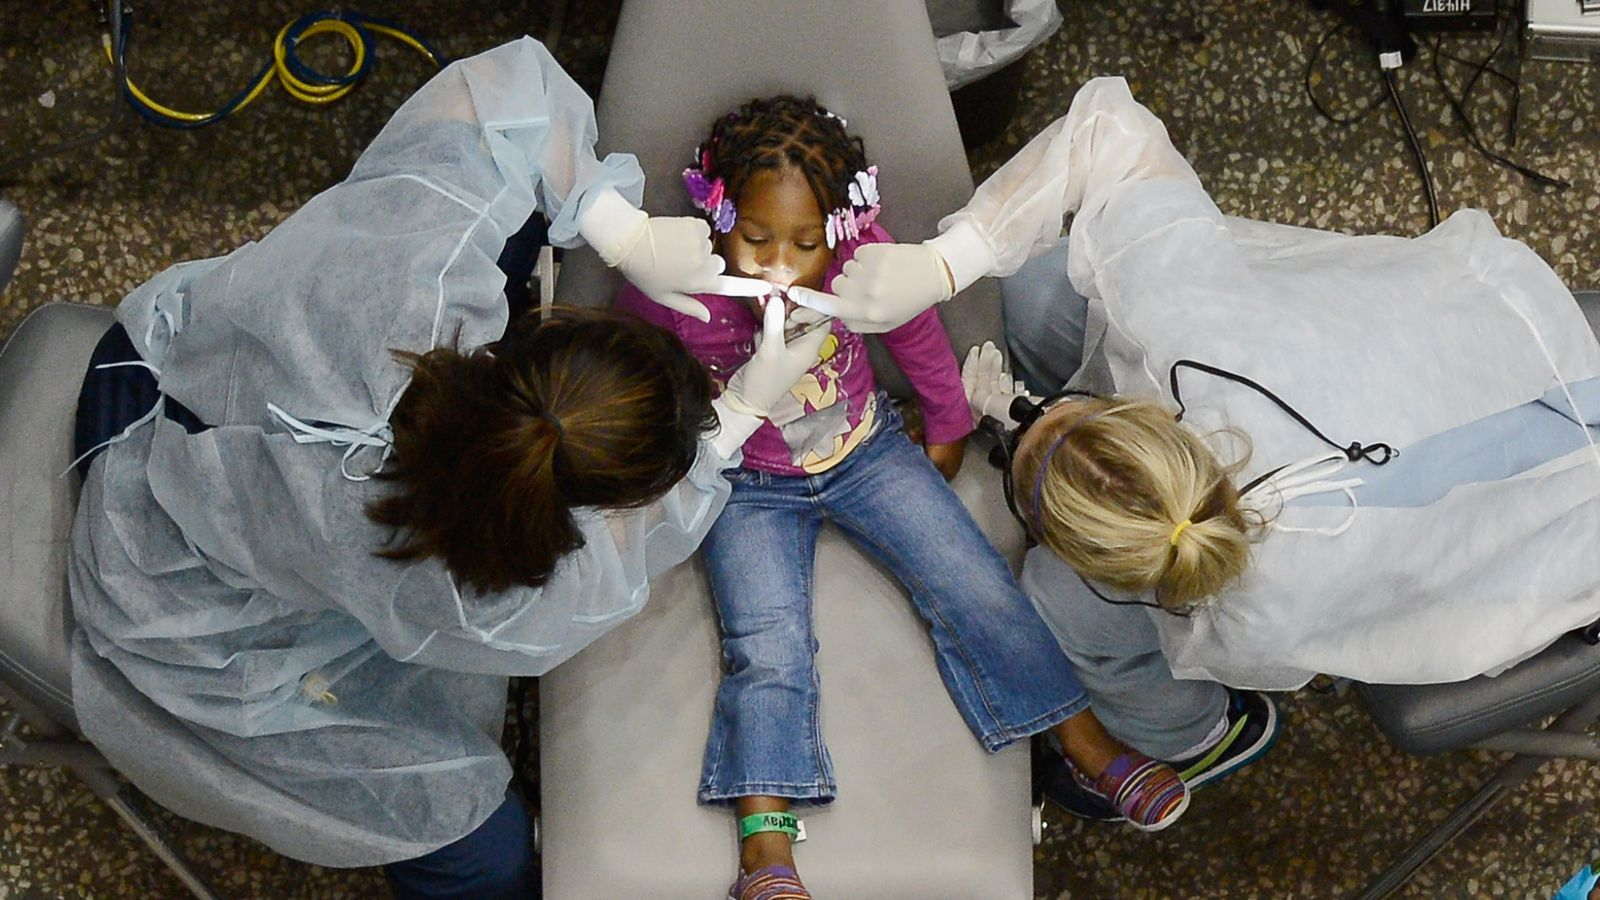 Black kids in the us have twice as many untreated cavities